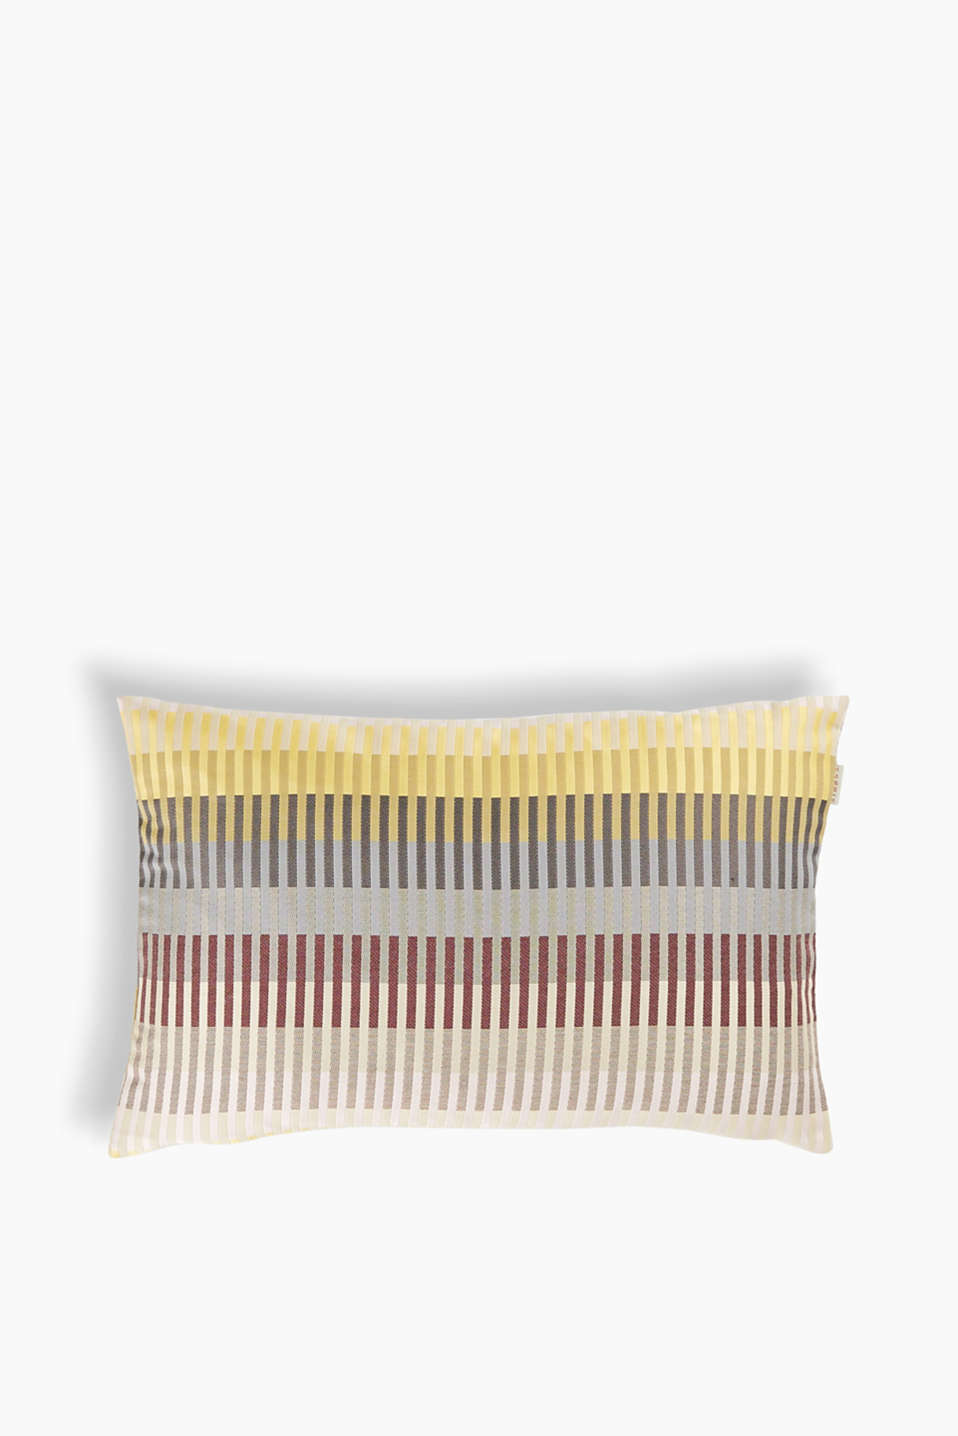 Esprit - Colourful cushion cover in jacquard fabric